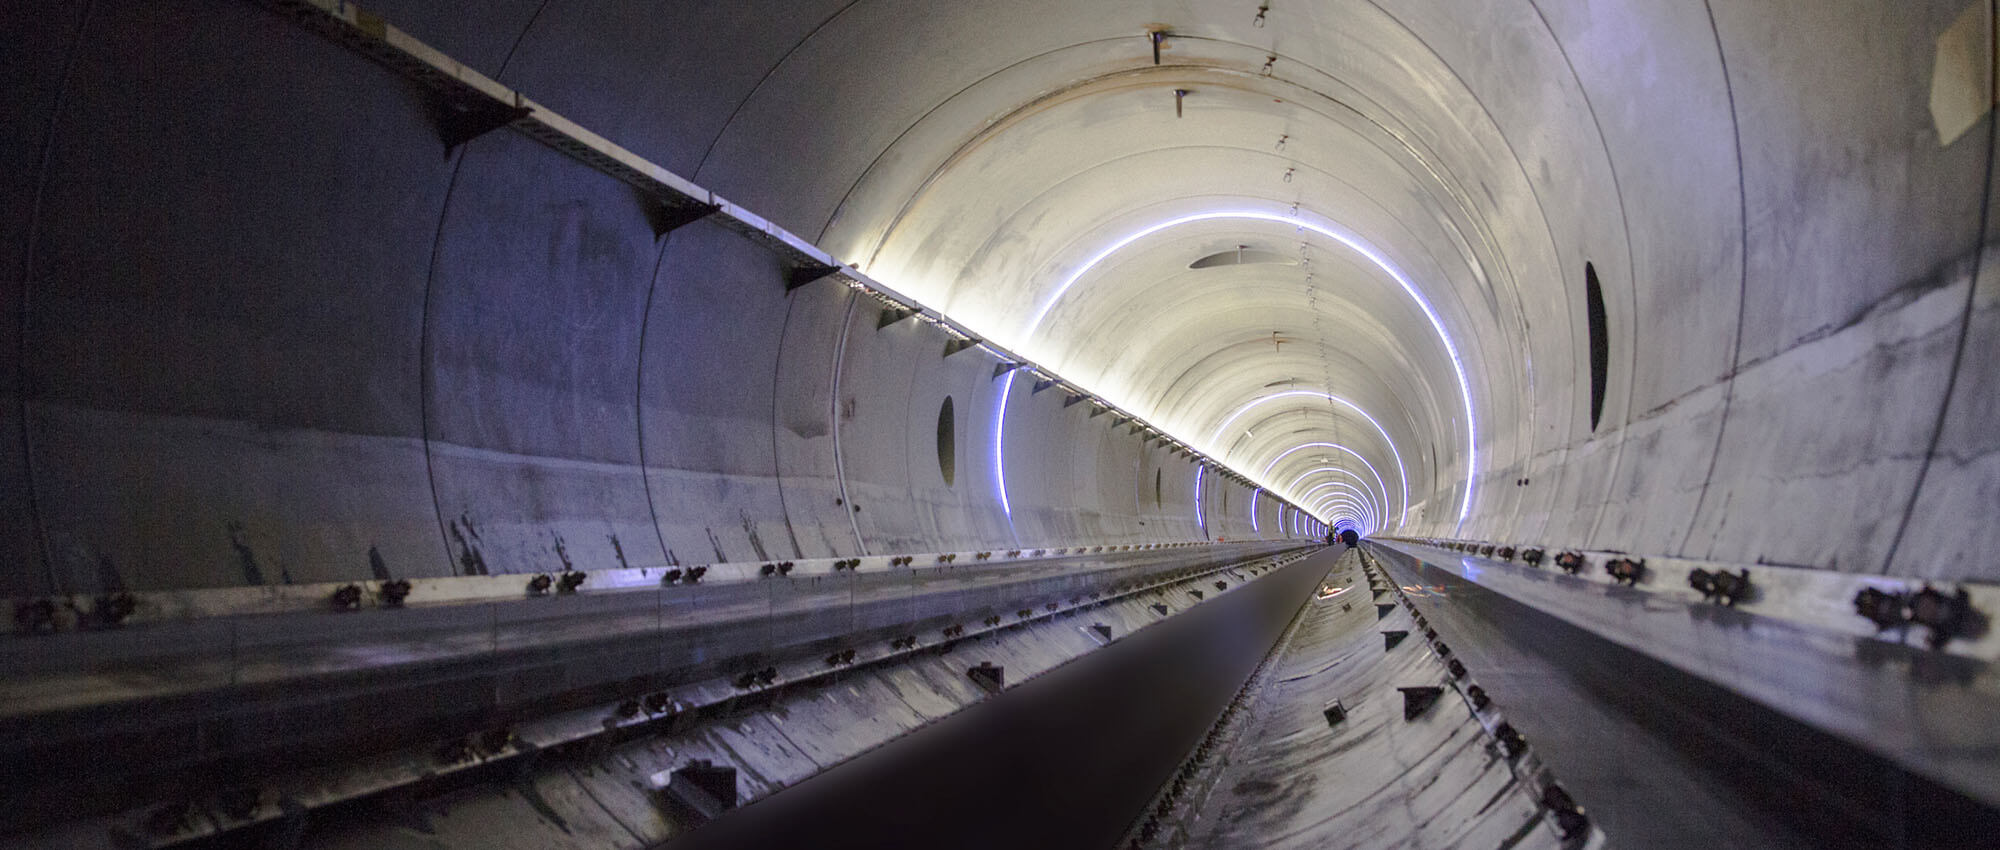 hyperloop transportation inside tunnel